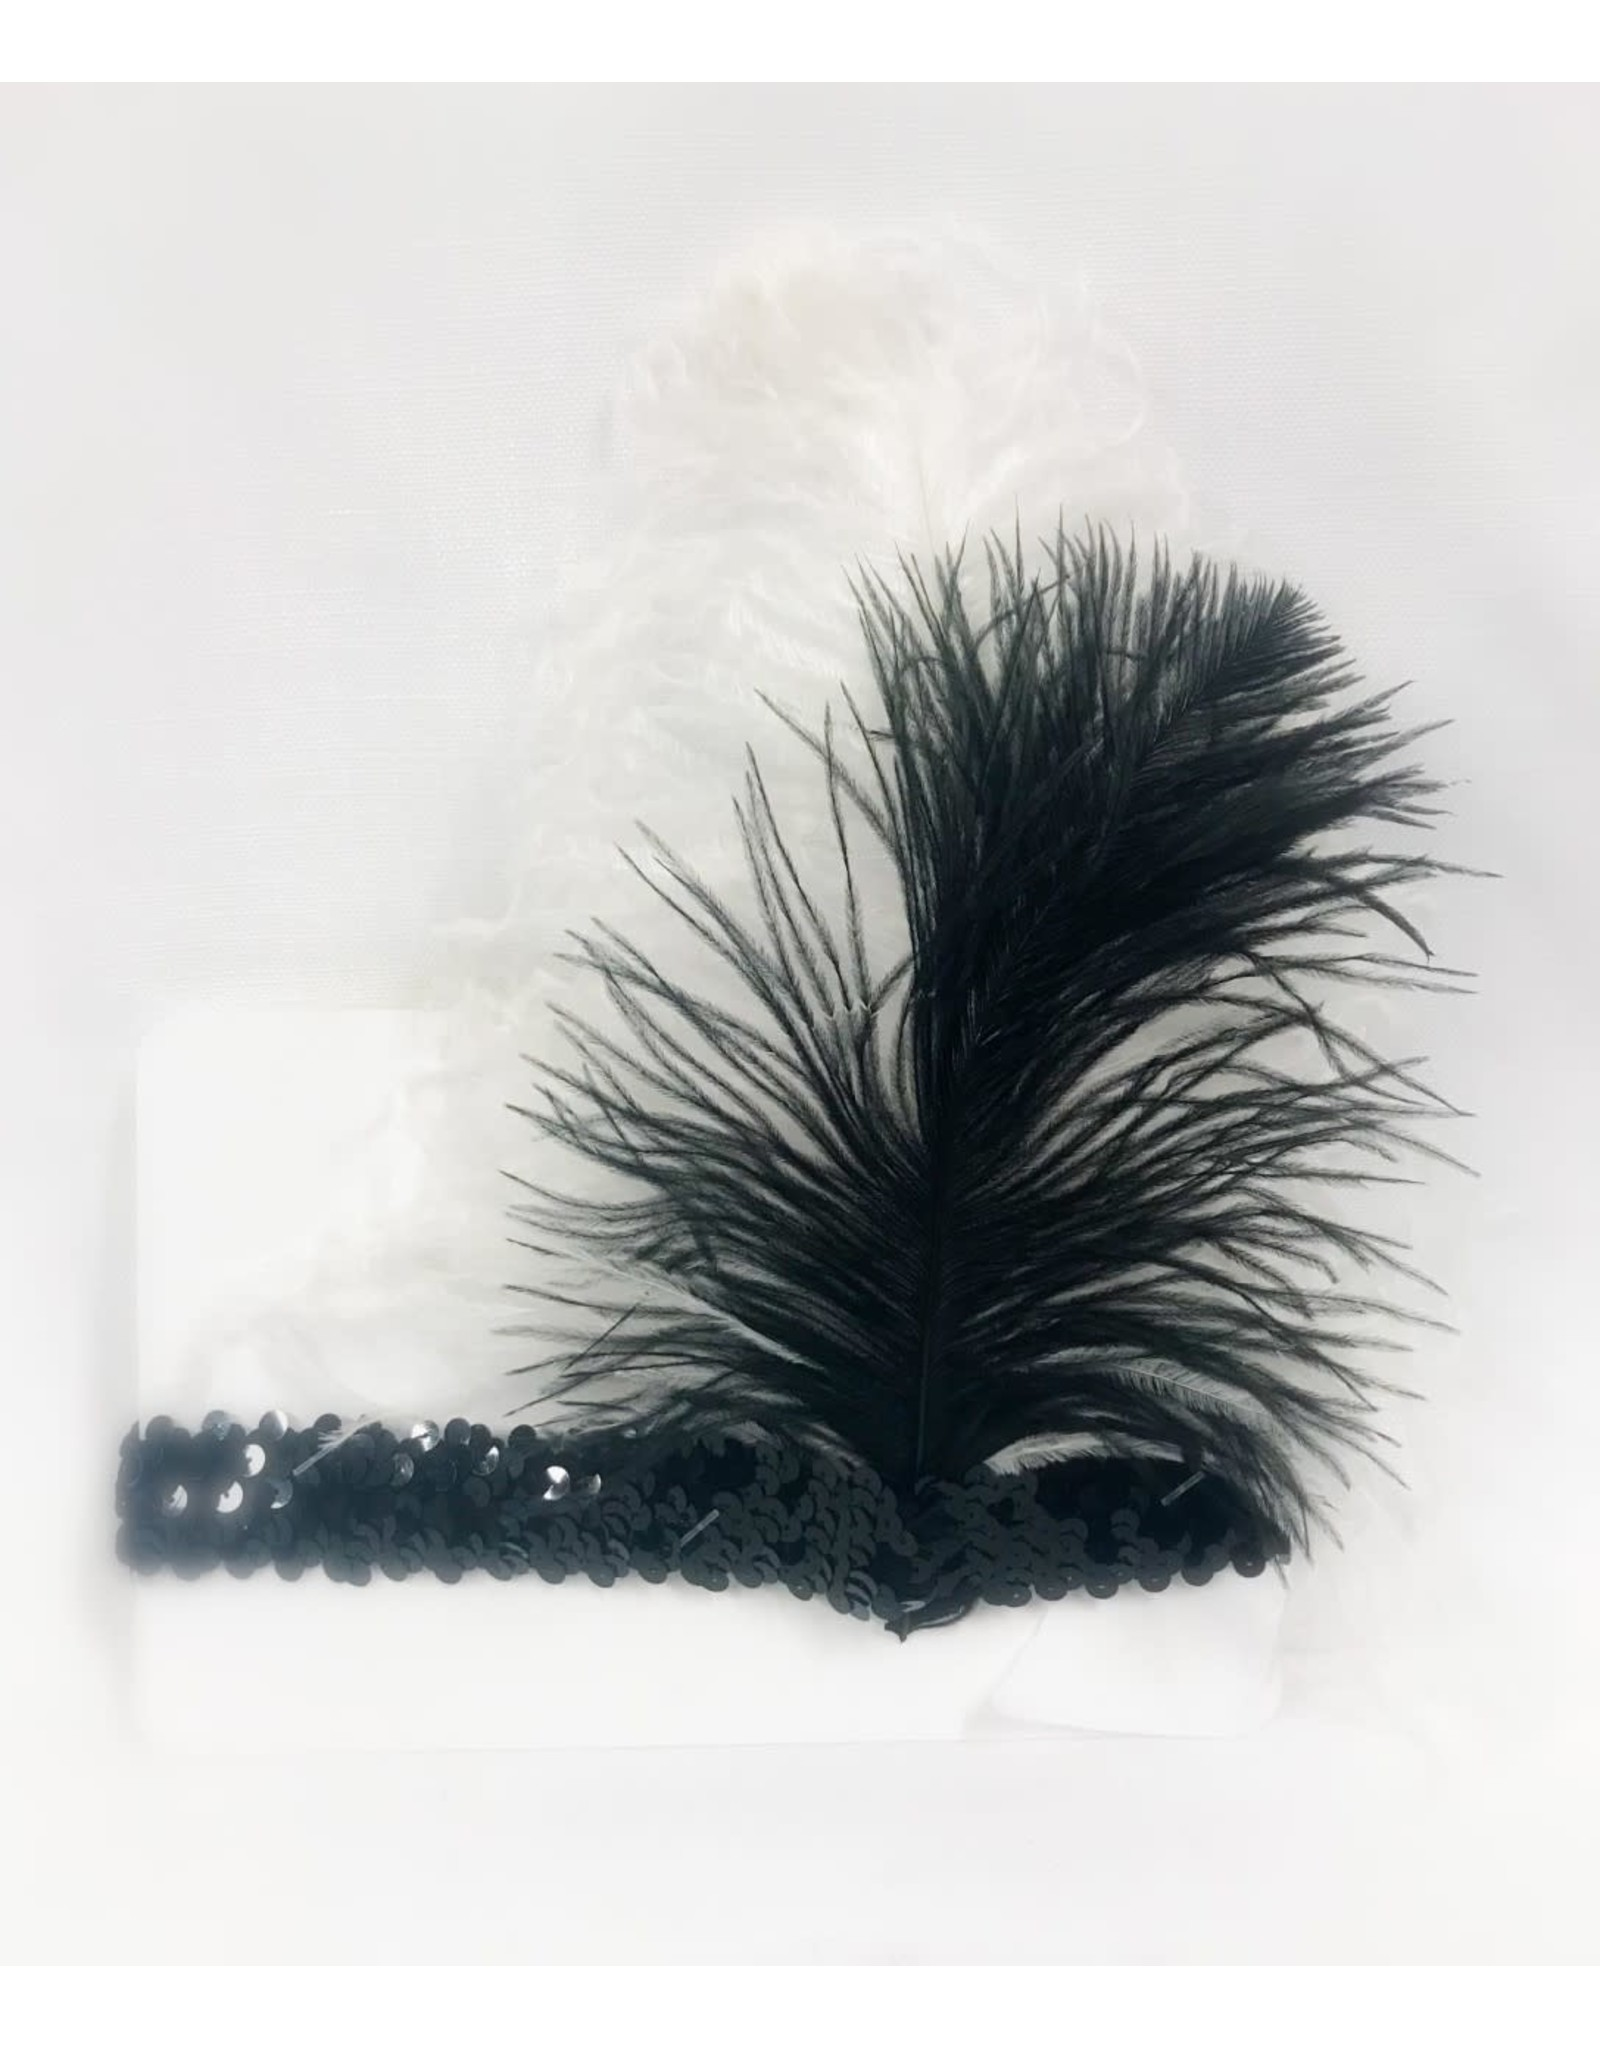 Karries Kostumes Black Sequin Headband with B&W Feathers